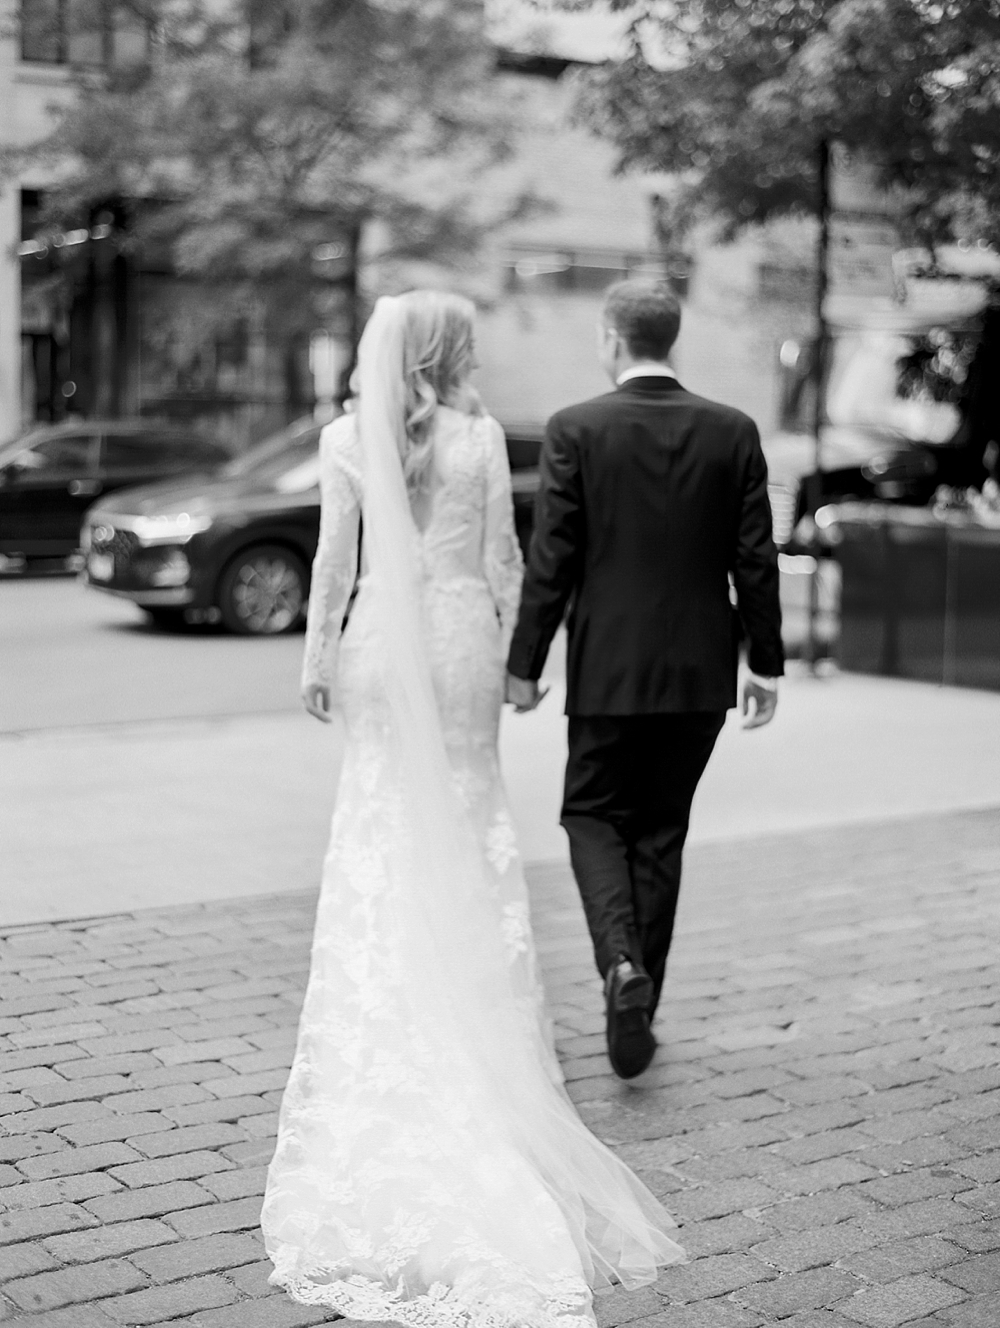 kristin-la-voie-photography-chicago-wedding-photographer-106